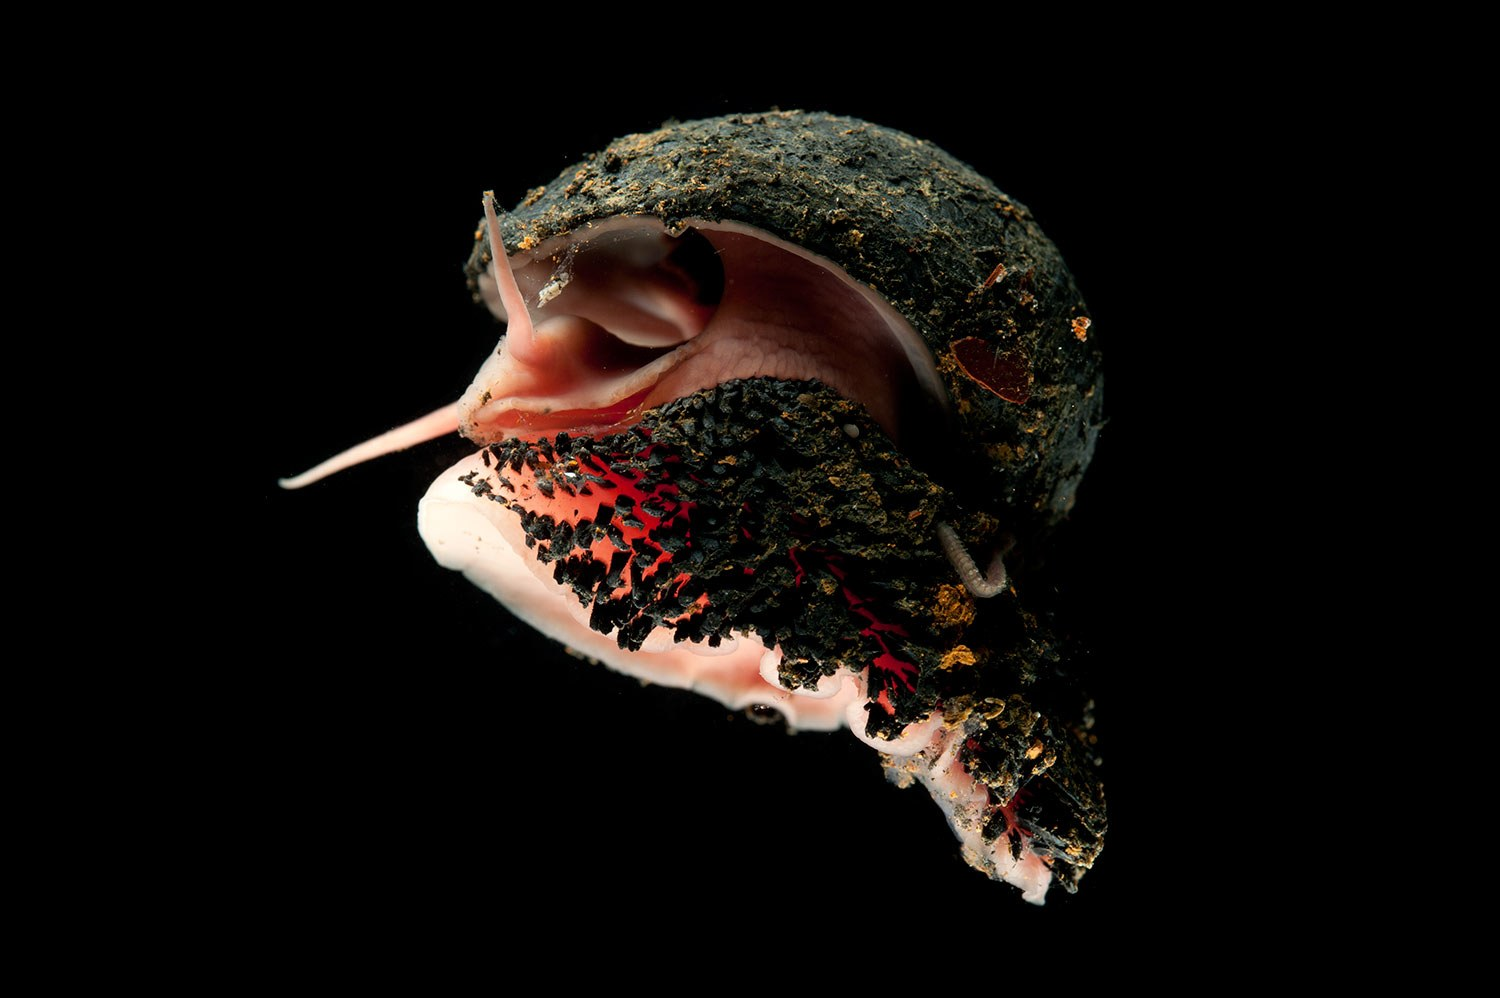 Tough shell to crack: The deep-sea snail made of iron